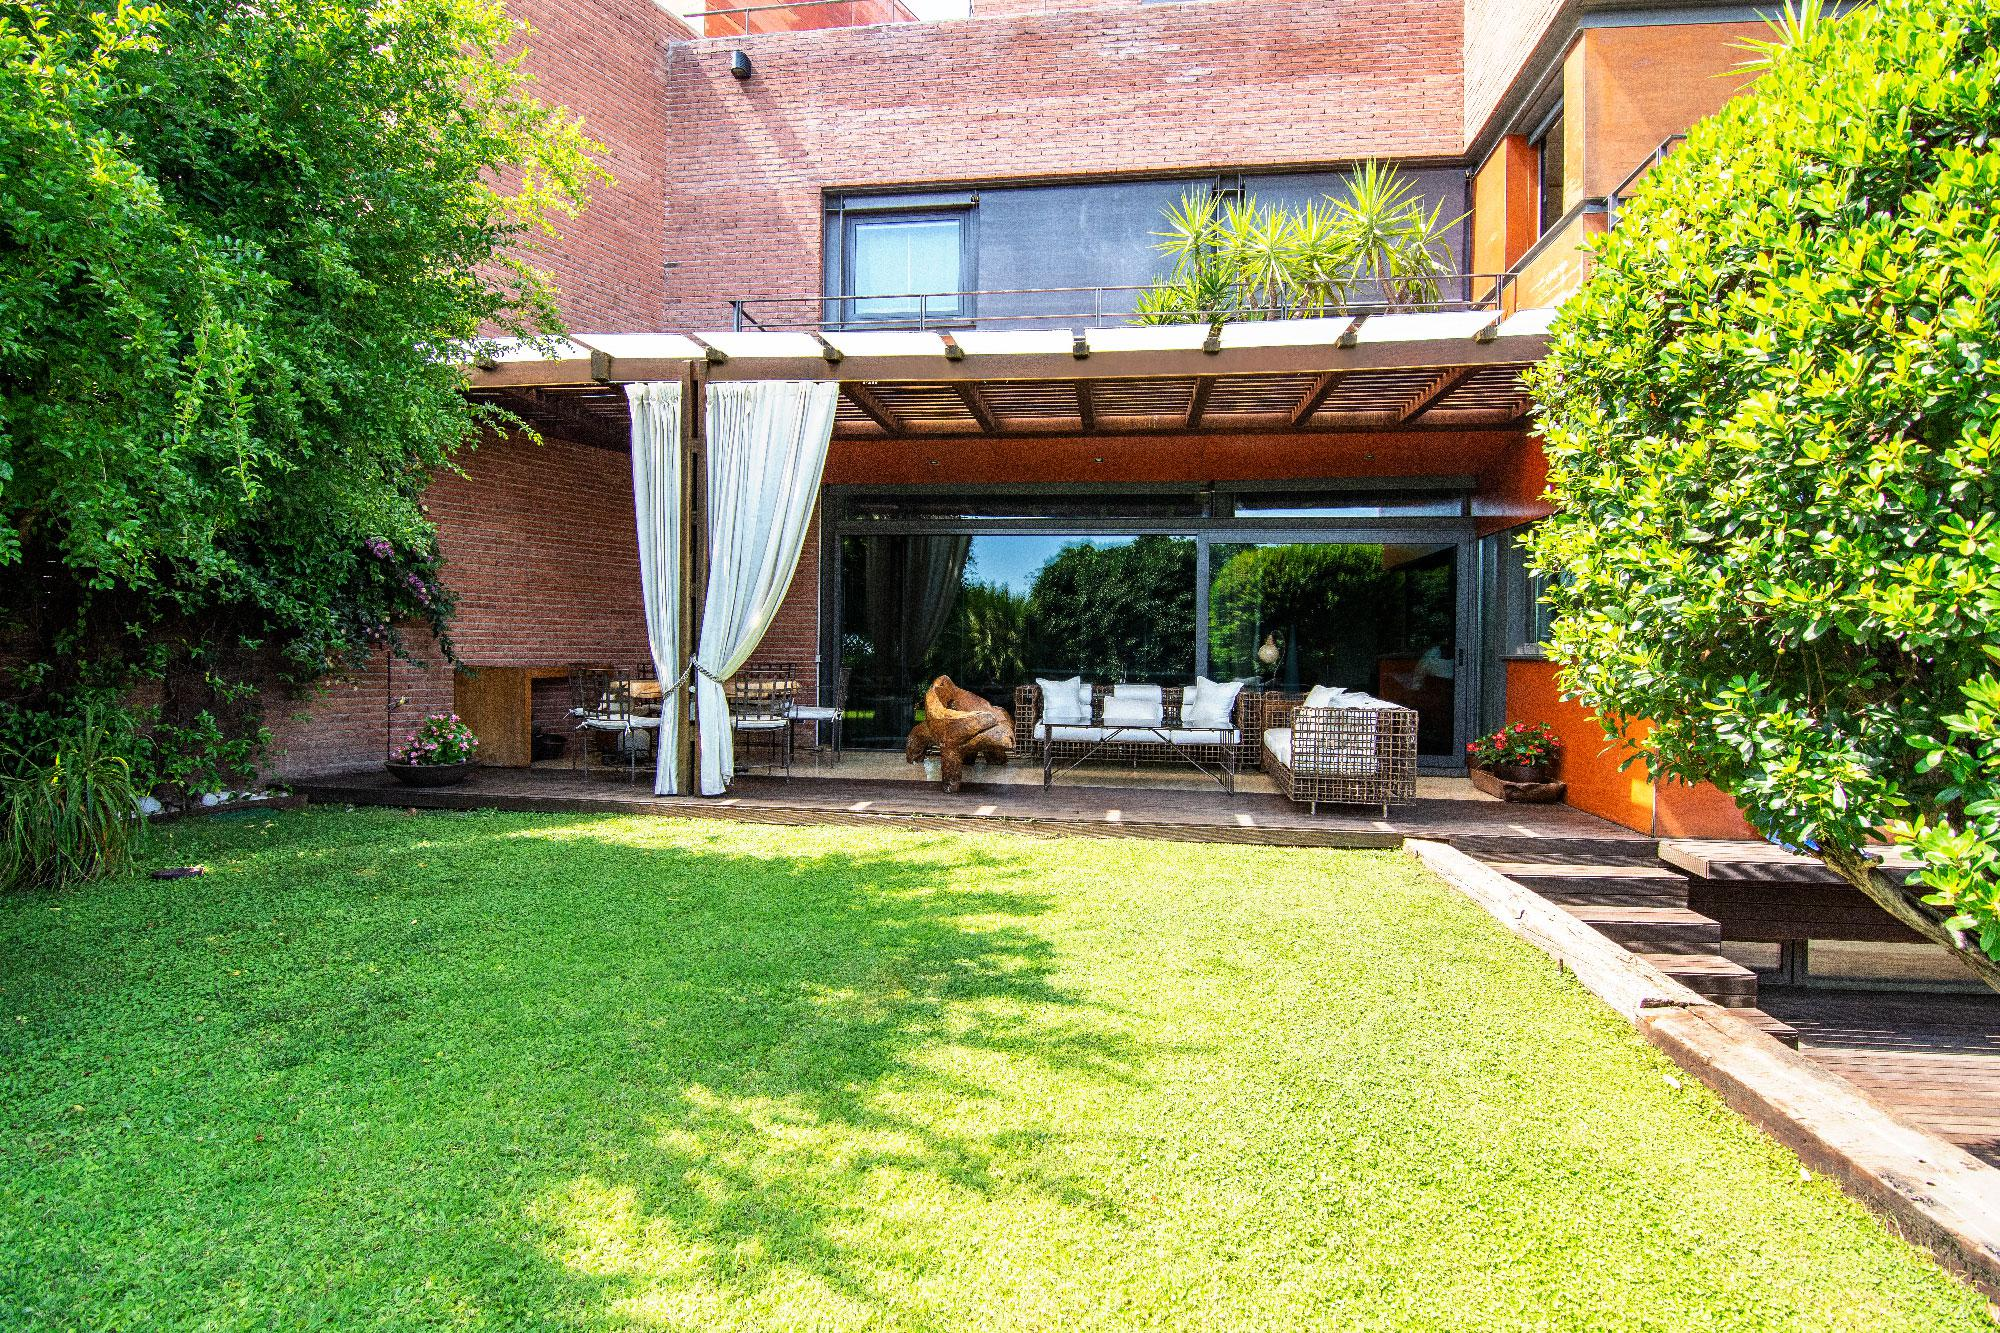 214424 House for sale in Les Corts, Pedralbes 26